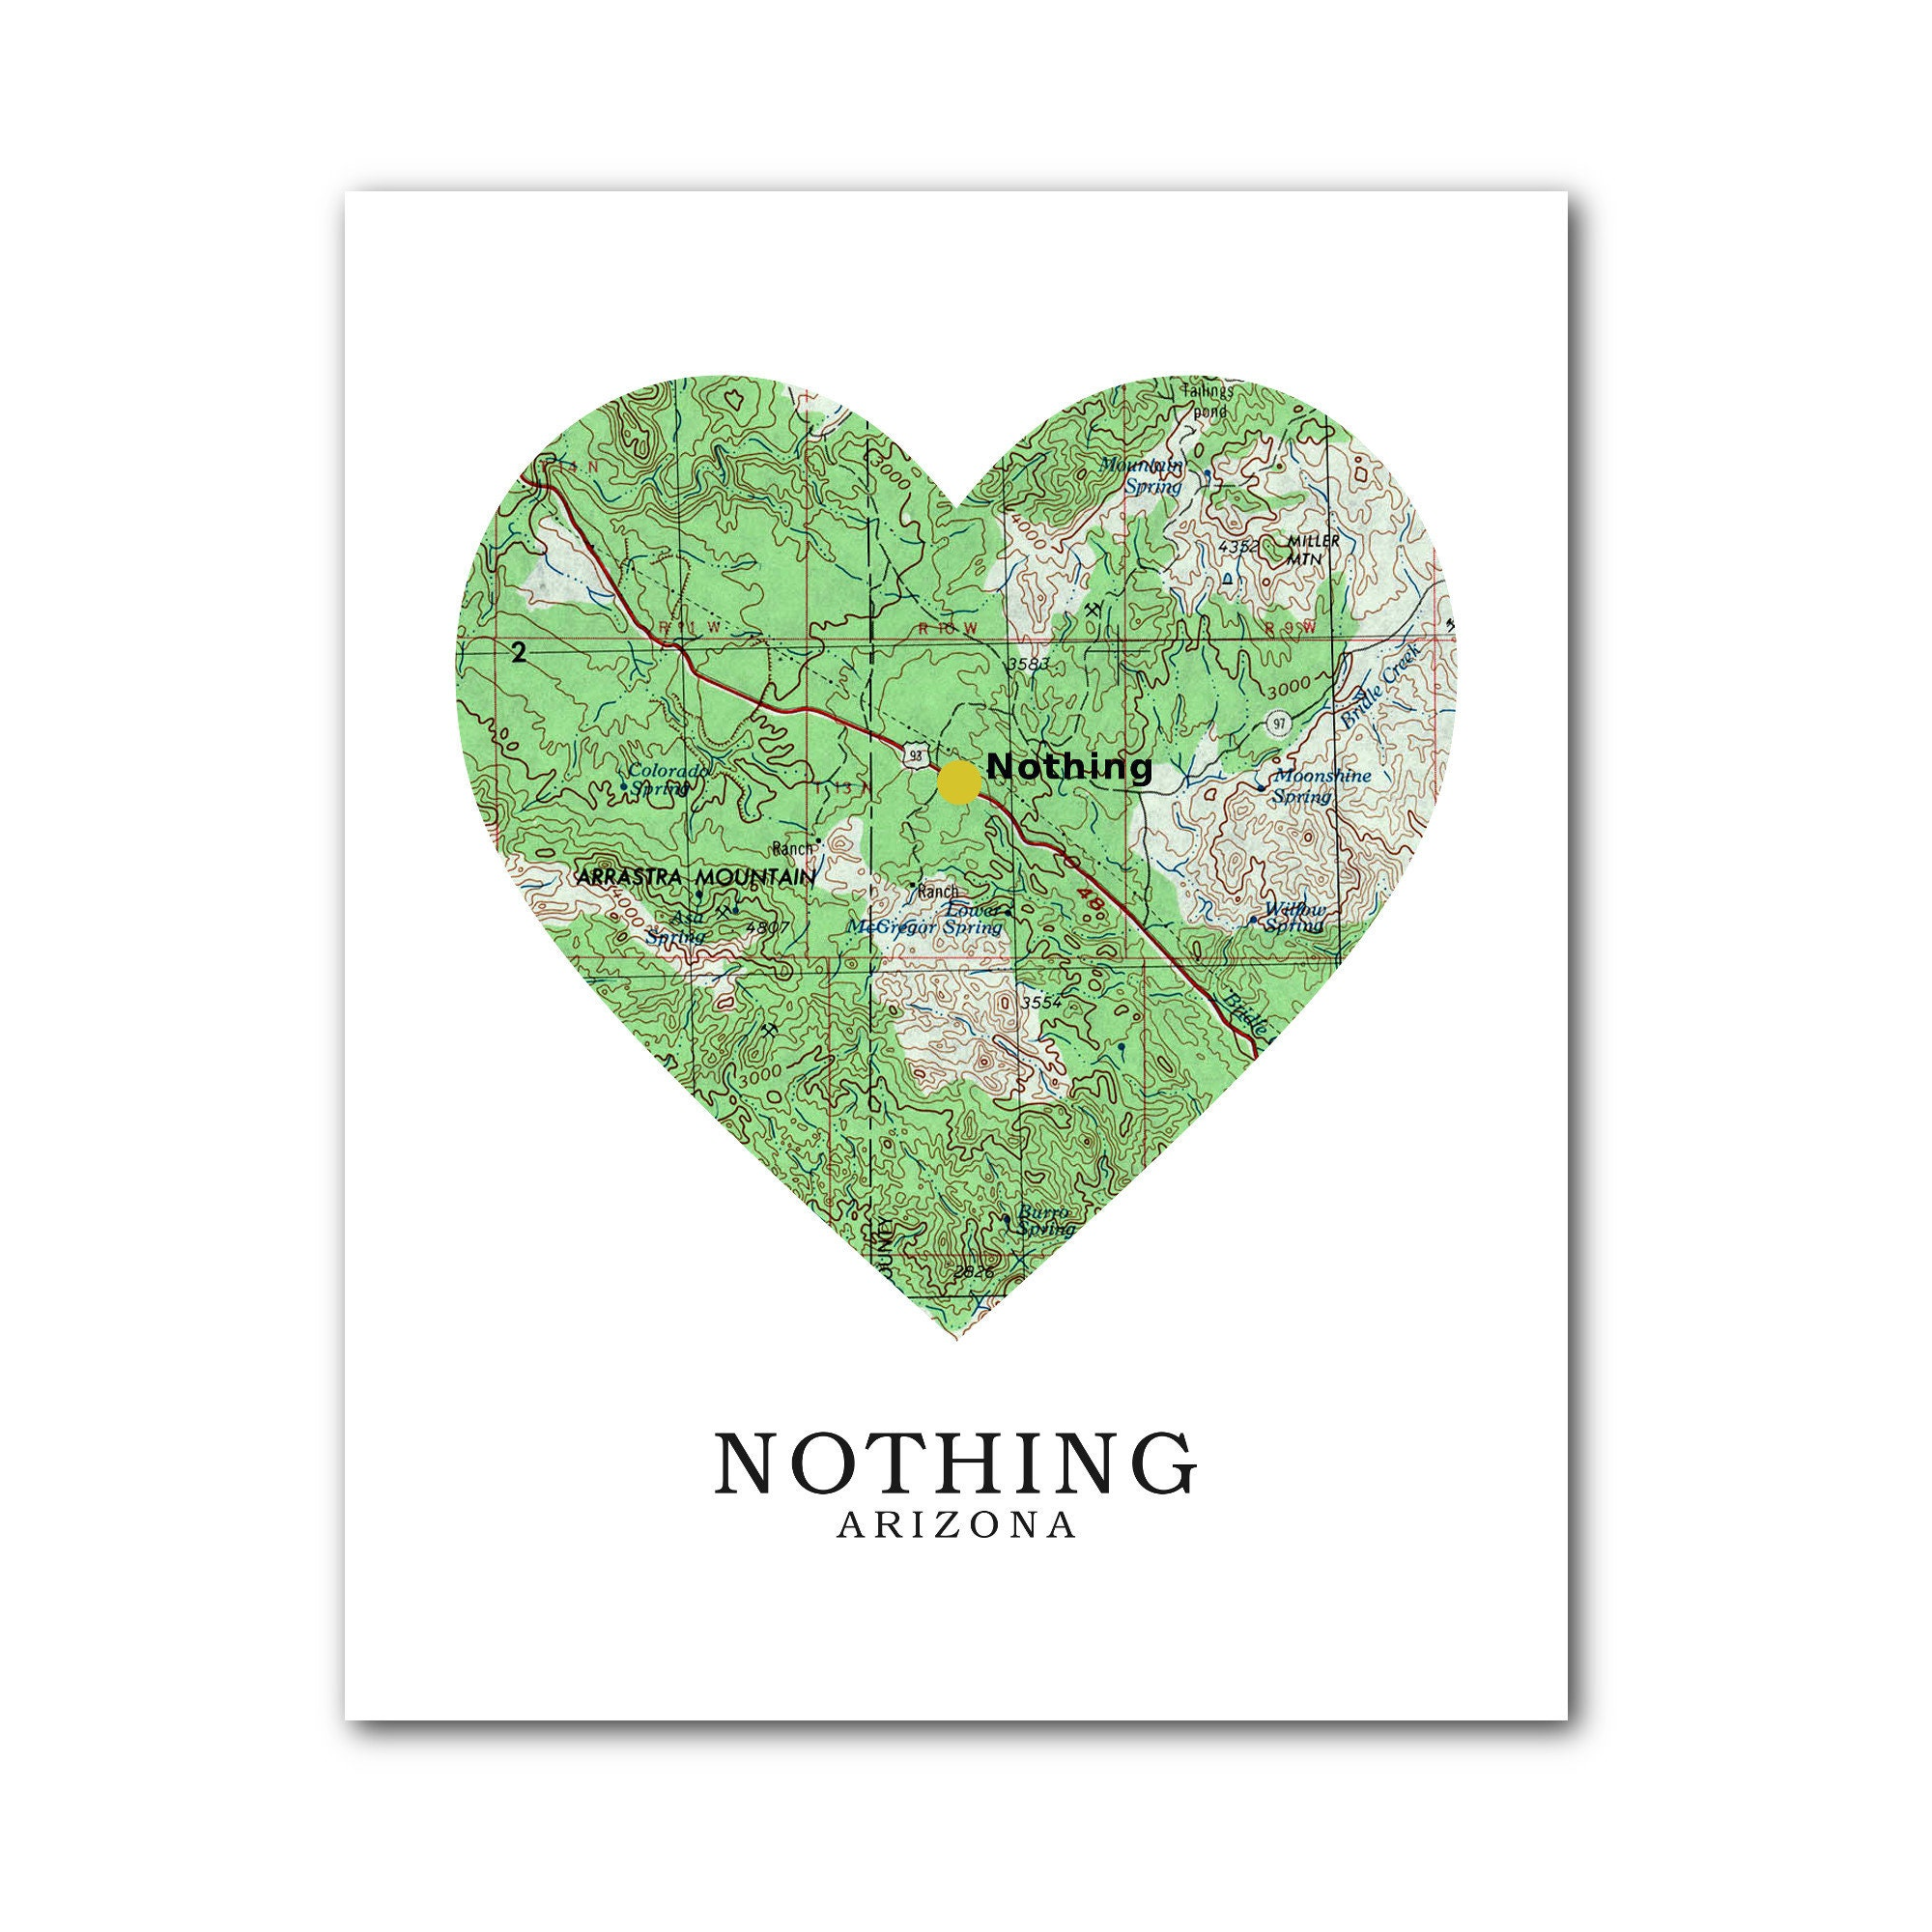 Map Of Just Arizona.Nothing Map Heart Print Nothing Map Art Nothing Arizona Map Heart Map Print Nothing Map Gift Love Arizona Art 8 X 10 Inches Unframed